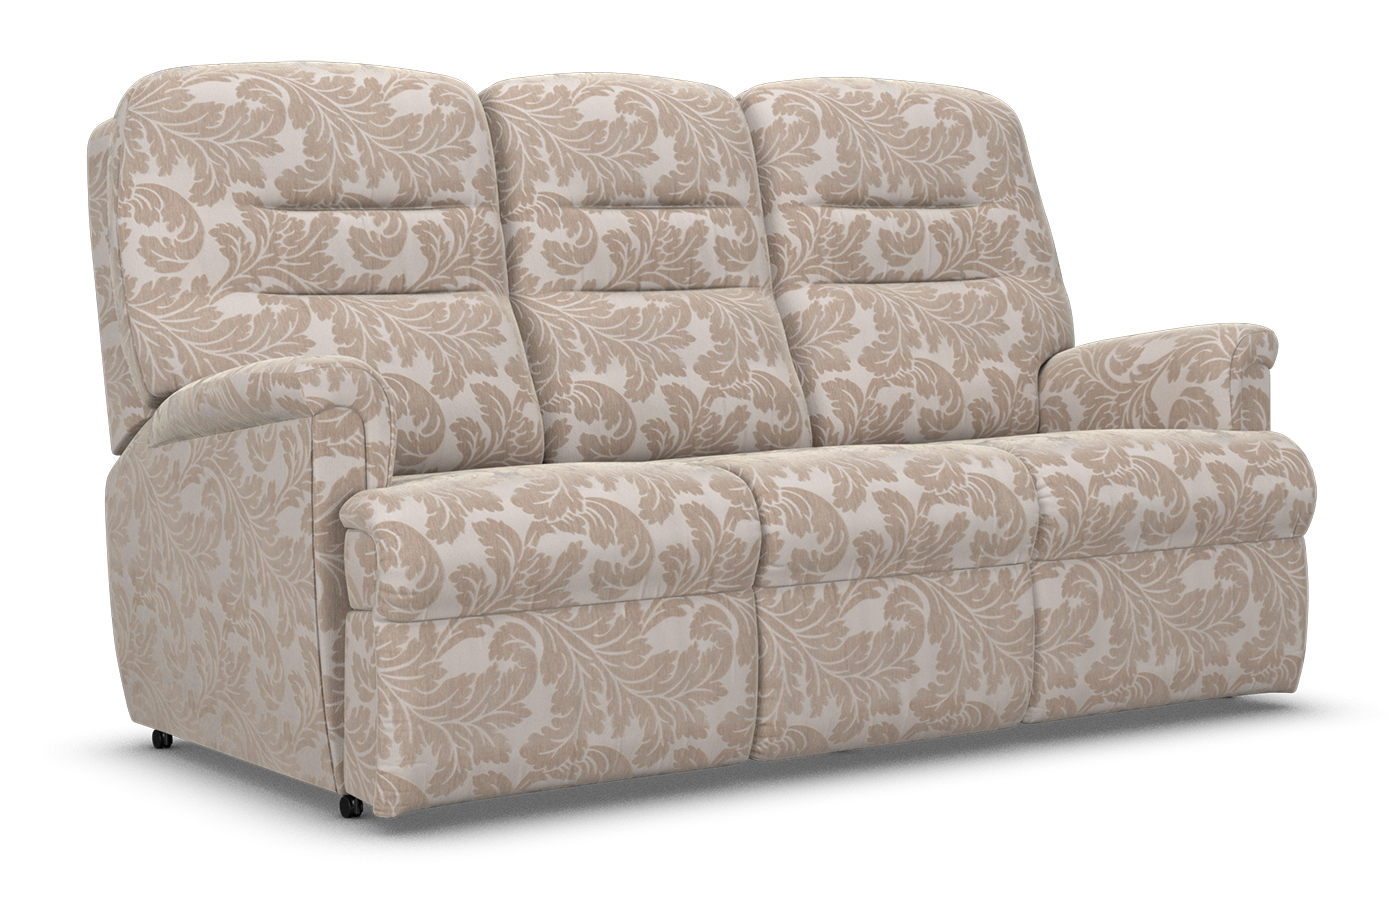 Three Seater Powered Recliner Sofa Available In Fabric